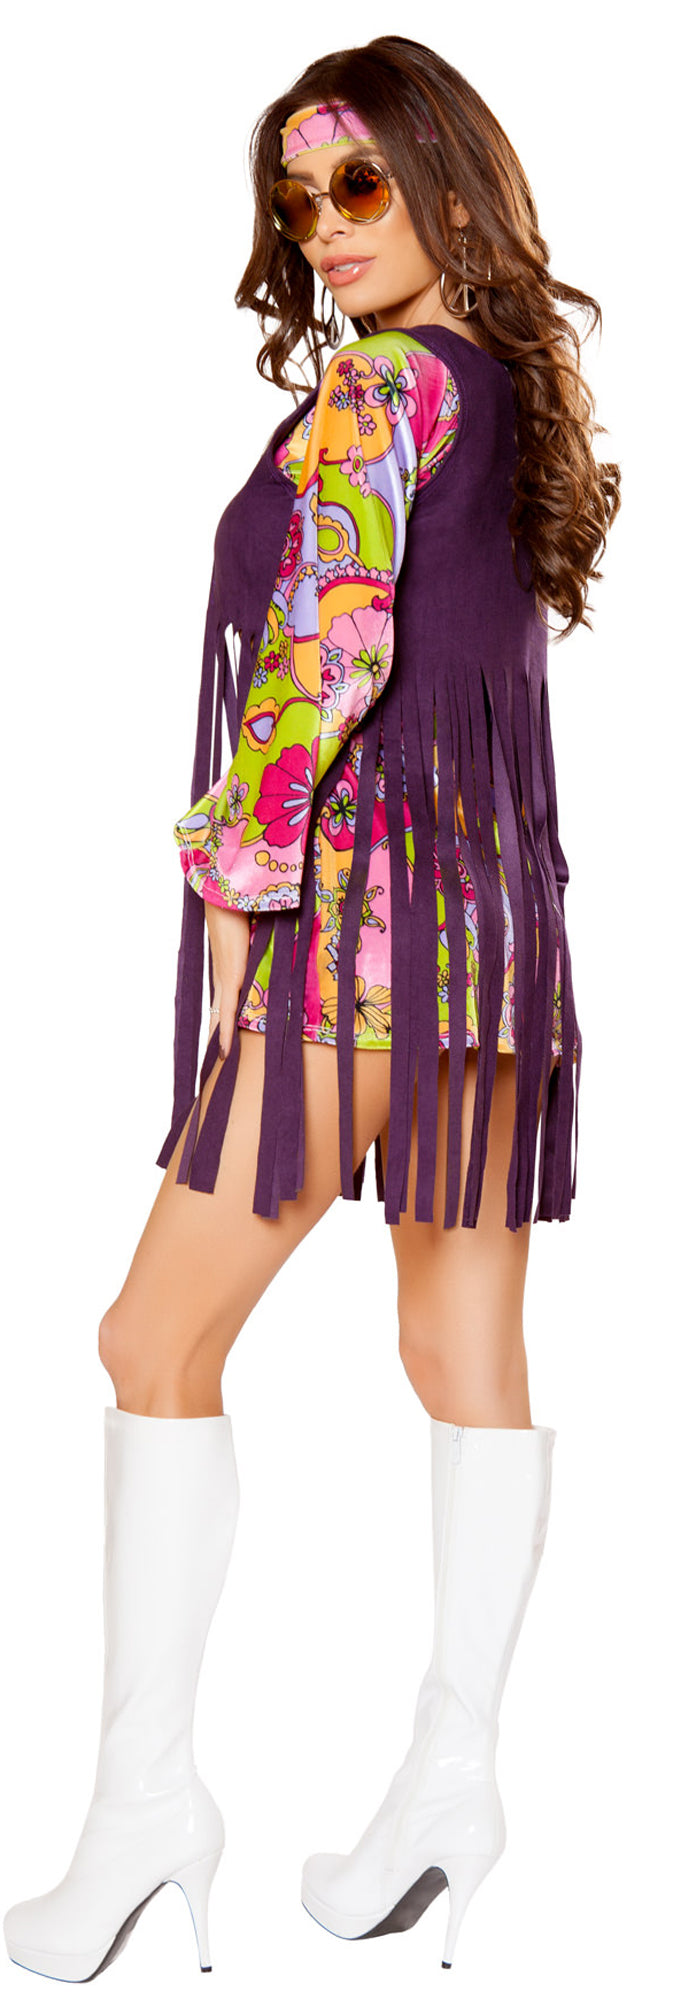 RM-10083 Groovy Hippie Costume Back